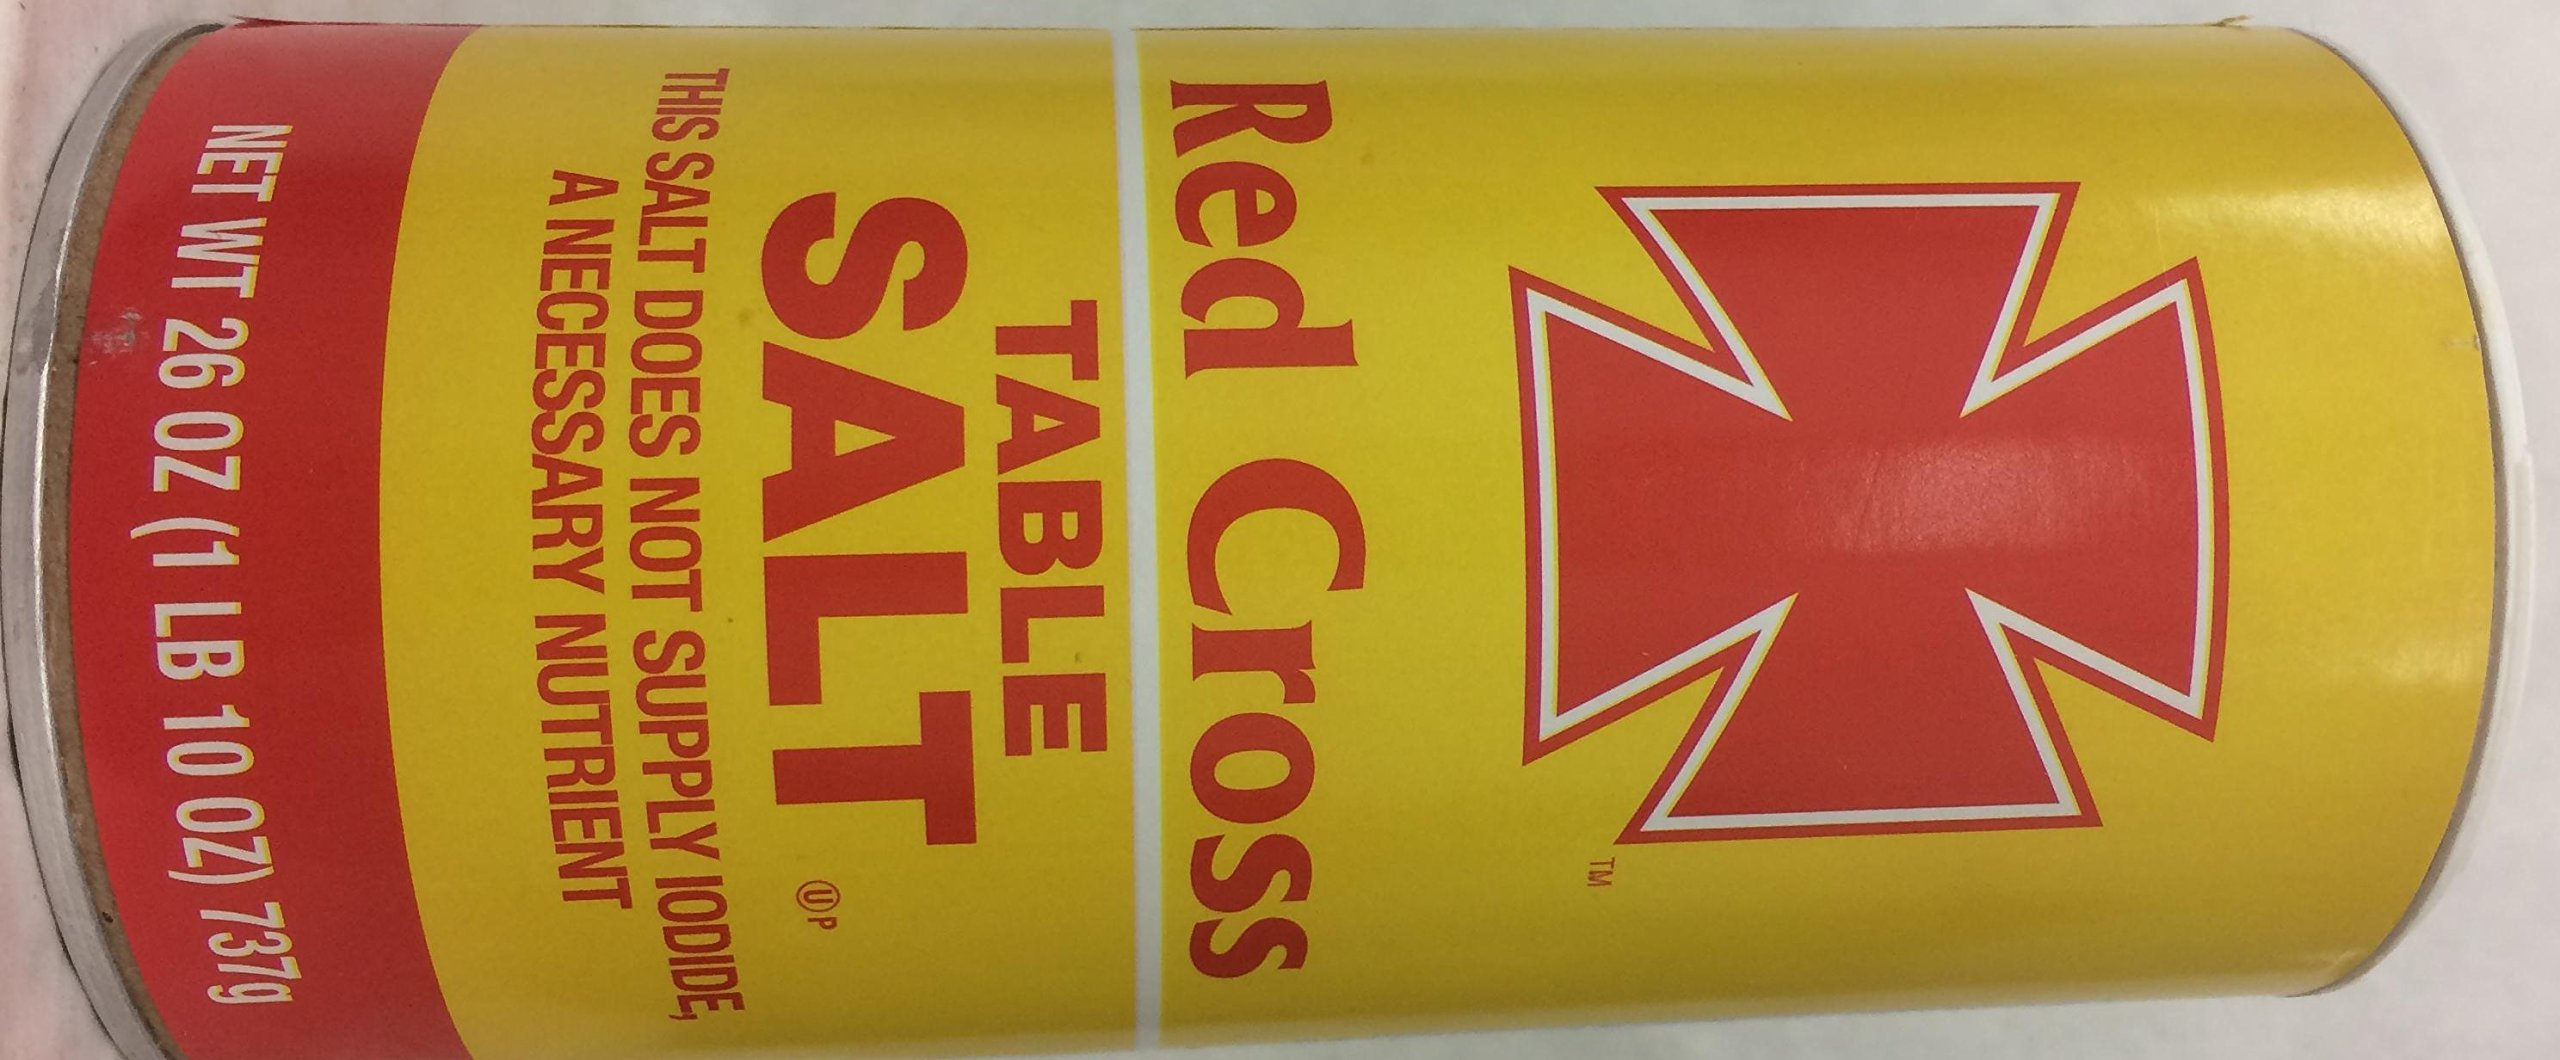 Red Cross Table Salt This Salt Does Not Supply Iodide 26 Oz. Pk Of 3.